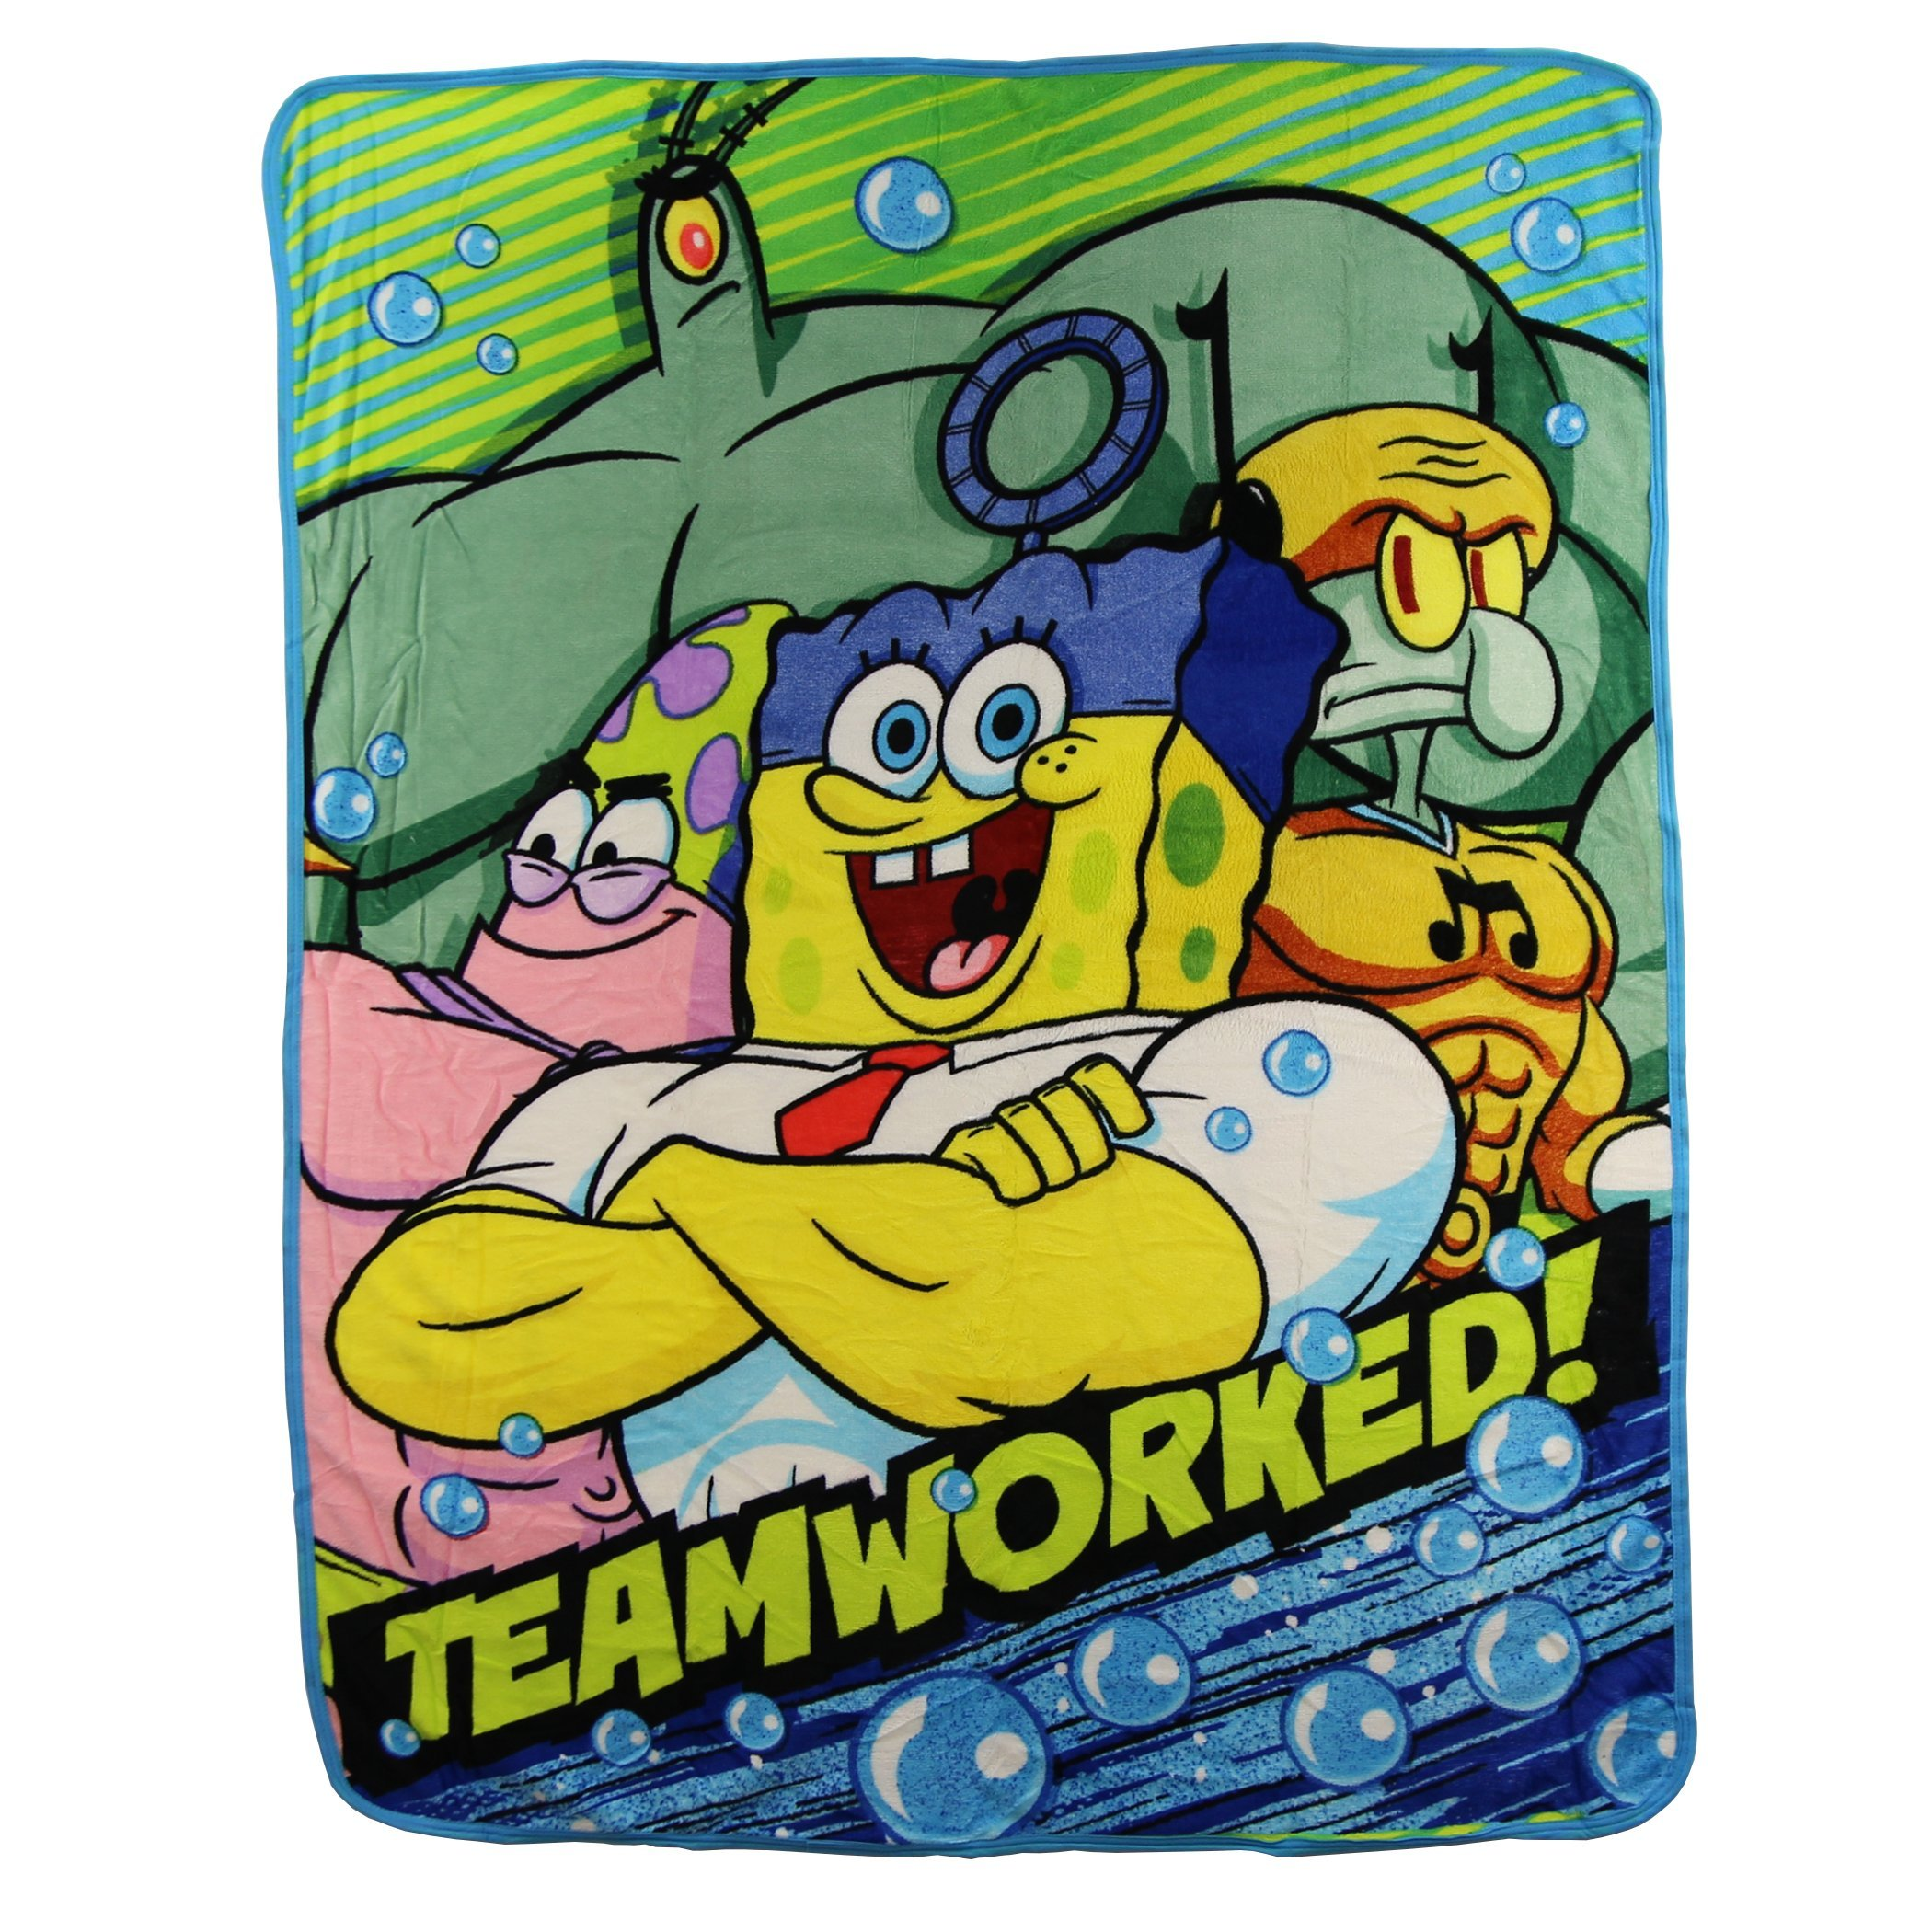 Kids Super Plush Sherpa Throw Blanket, 46x50-Inch (Spongebob Squarepants ''Teamworked'') by The Northwest Company